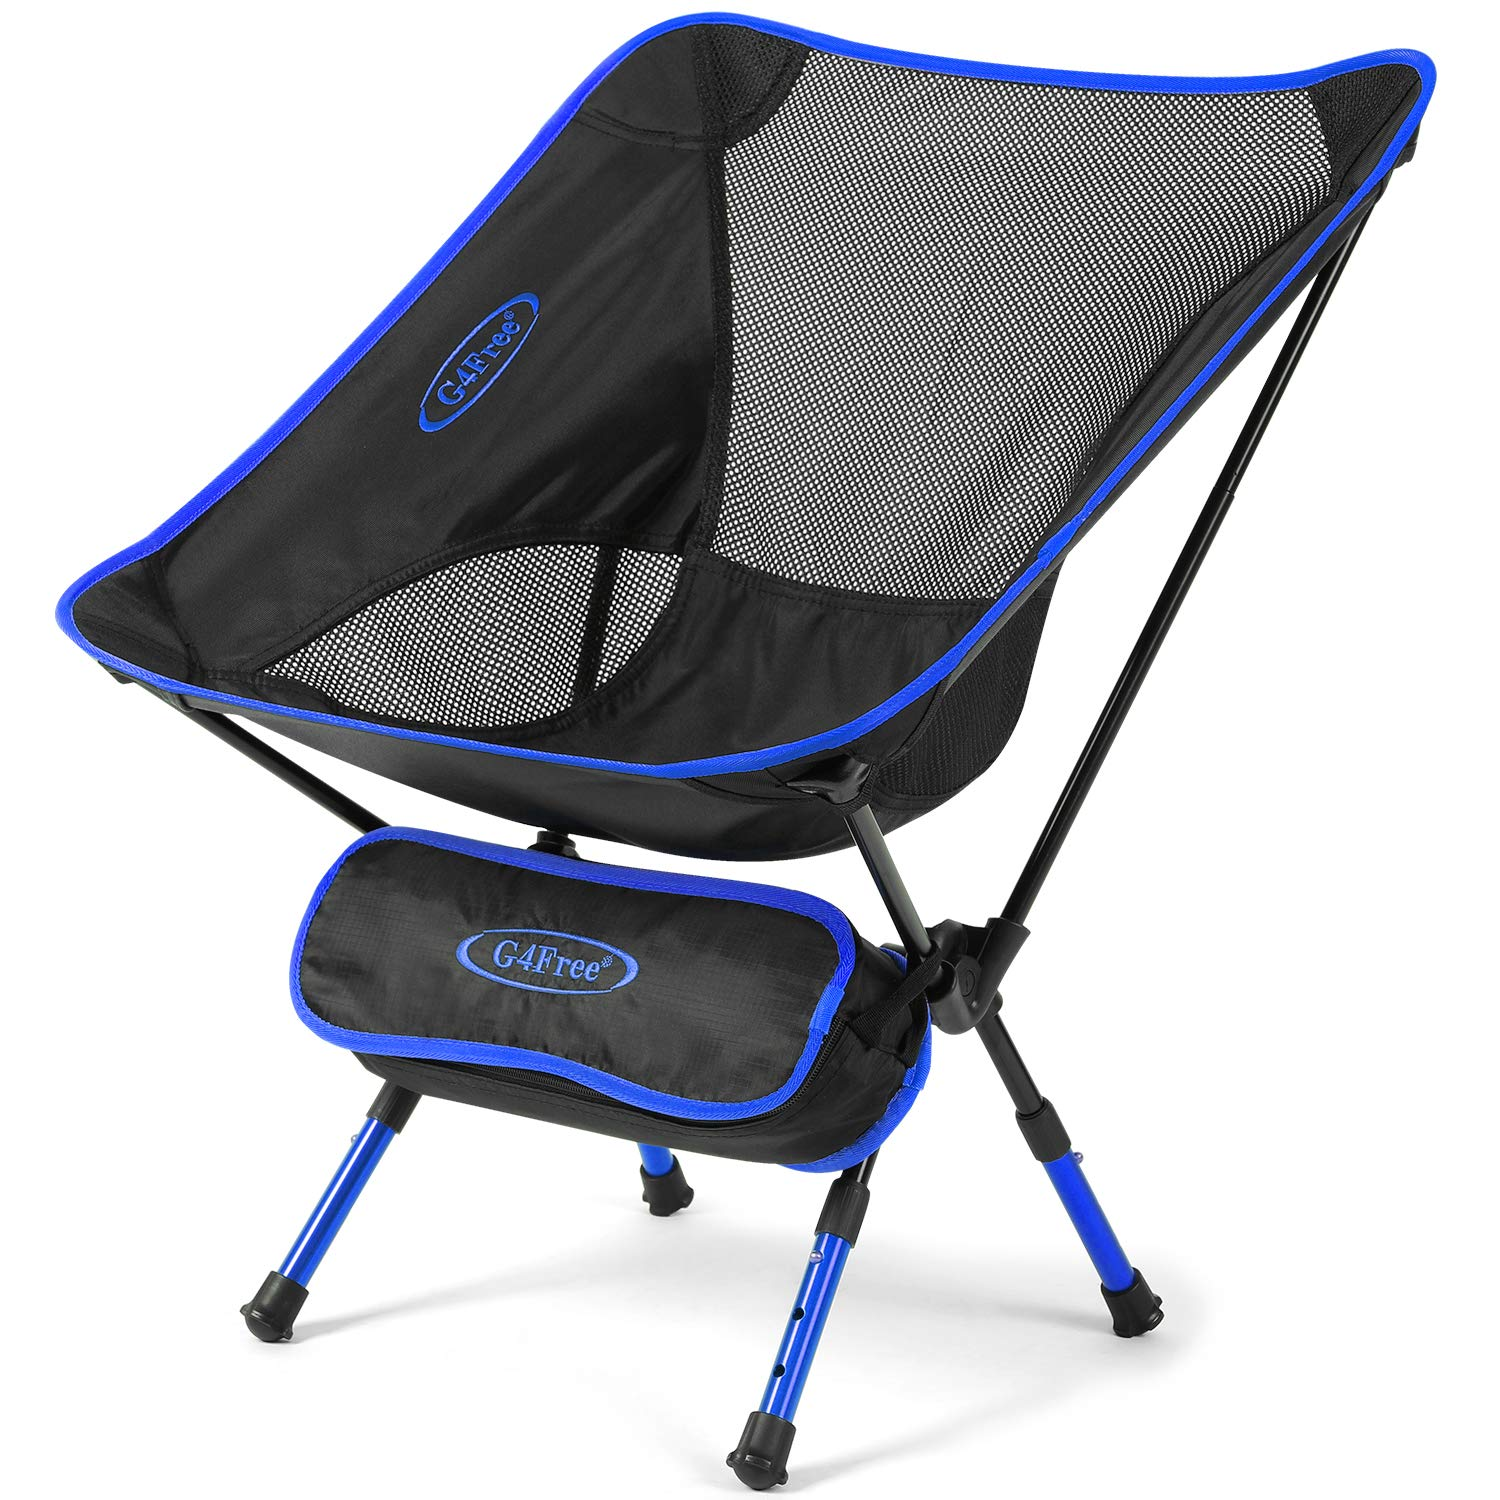 G4free Fishing Backpack Chair